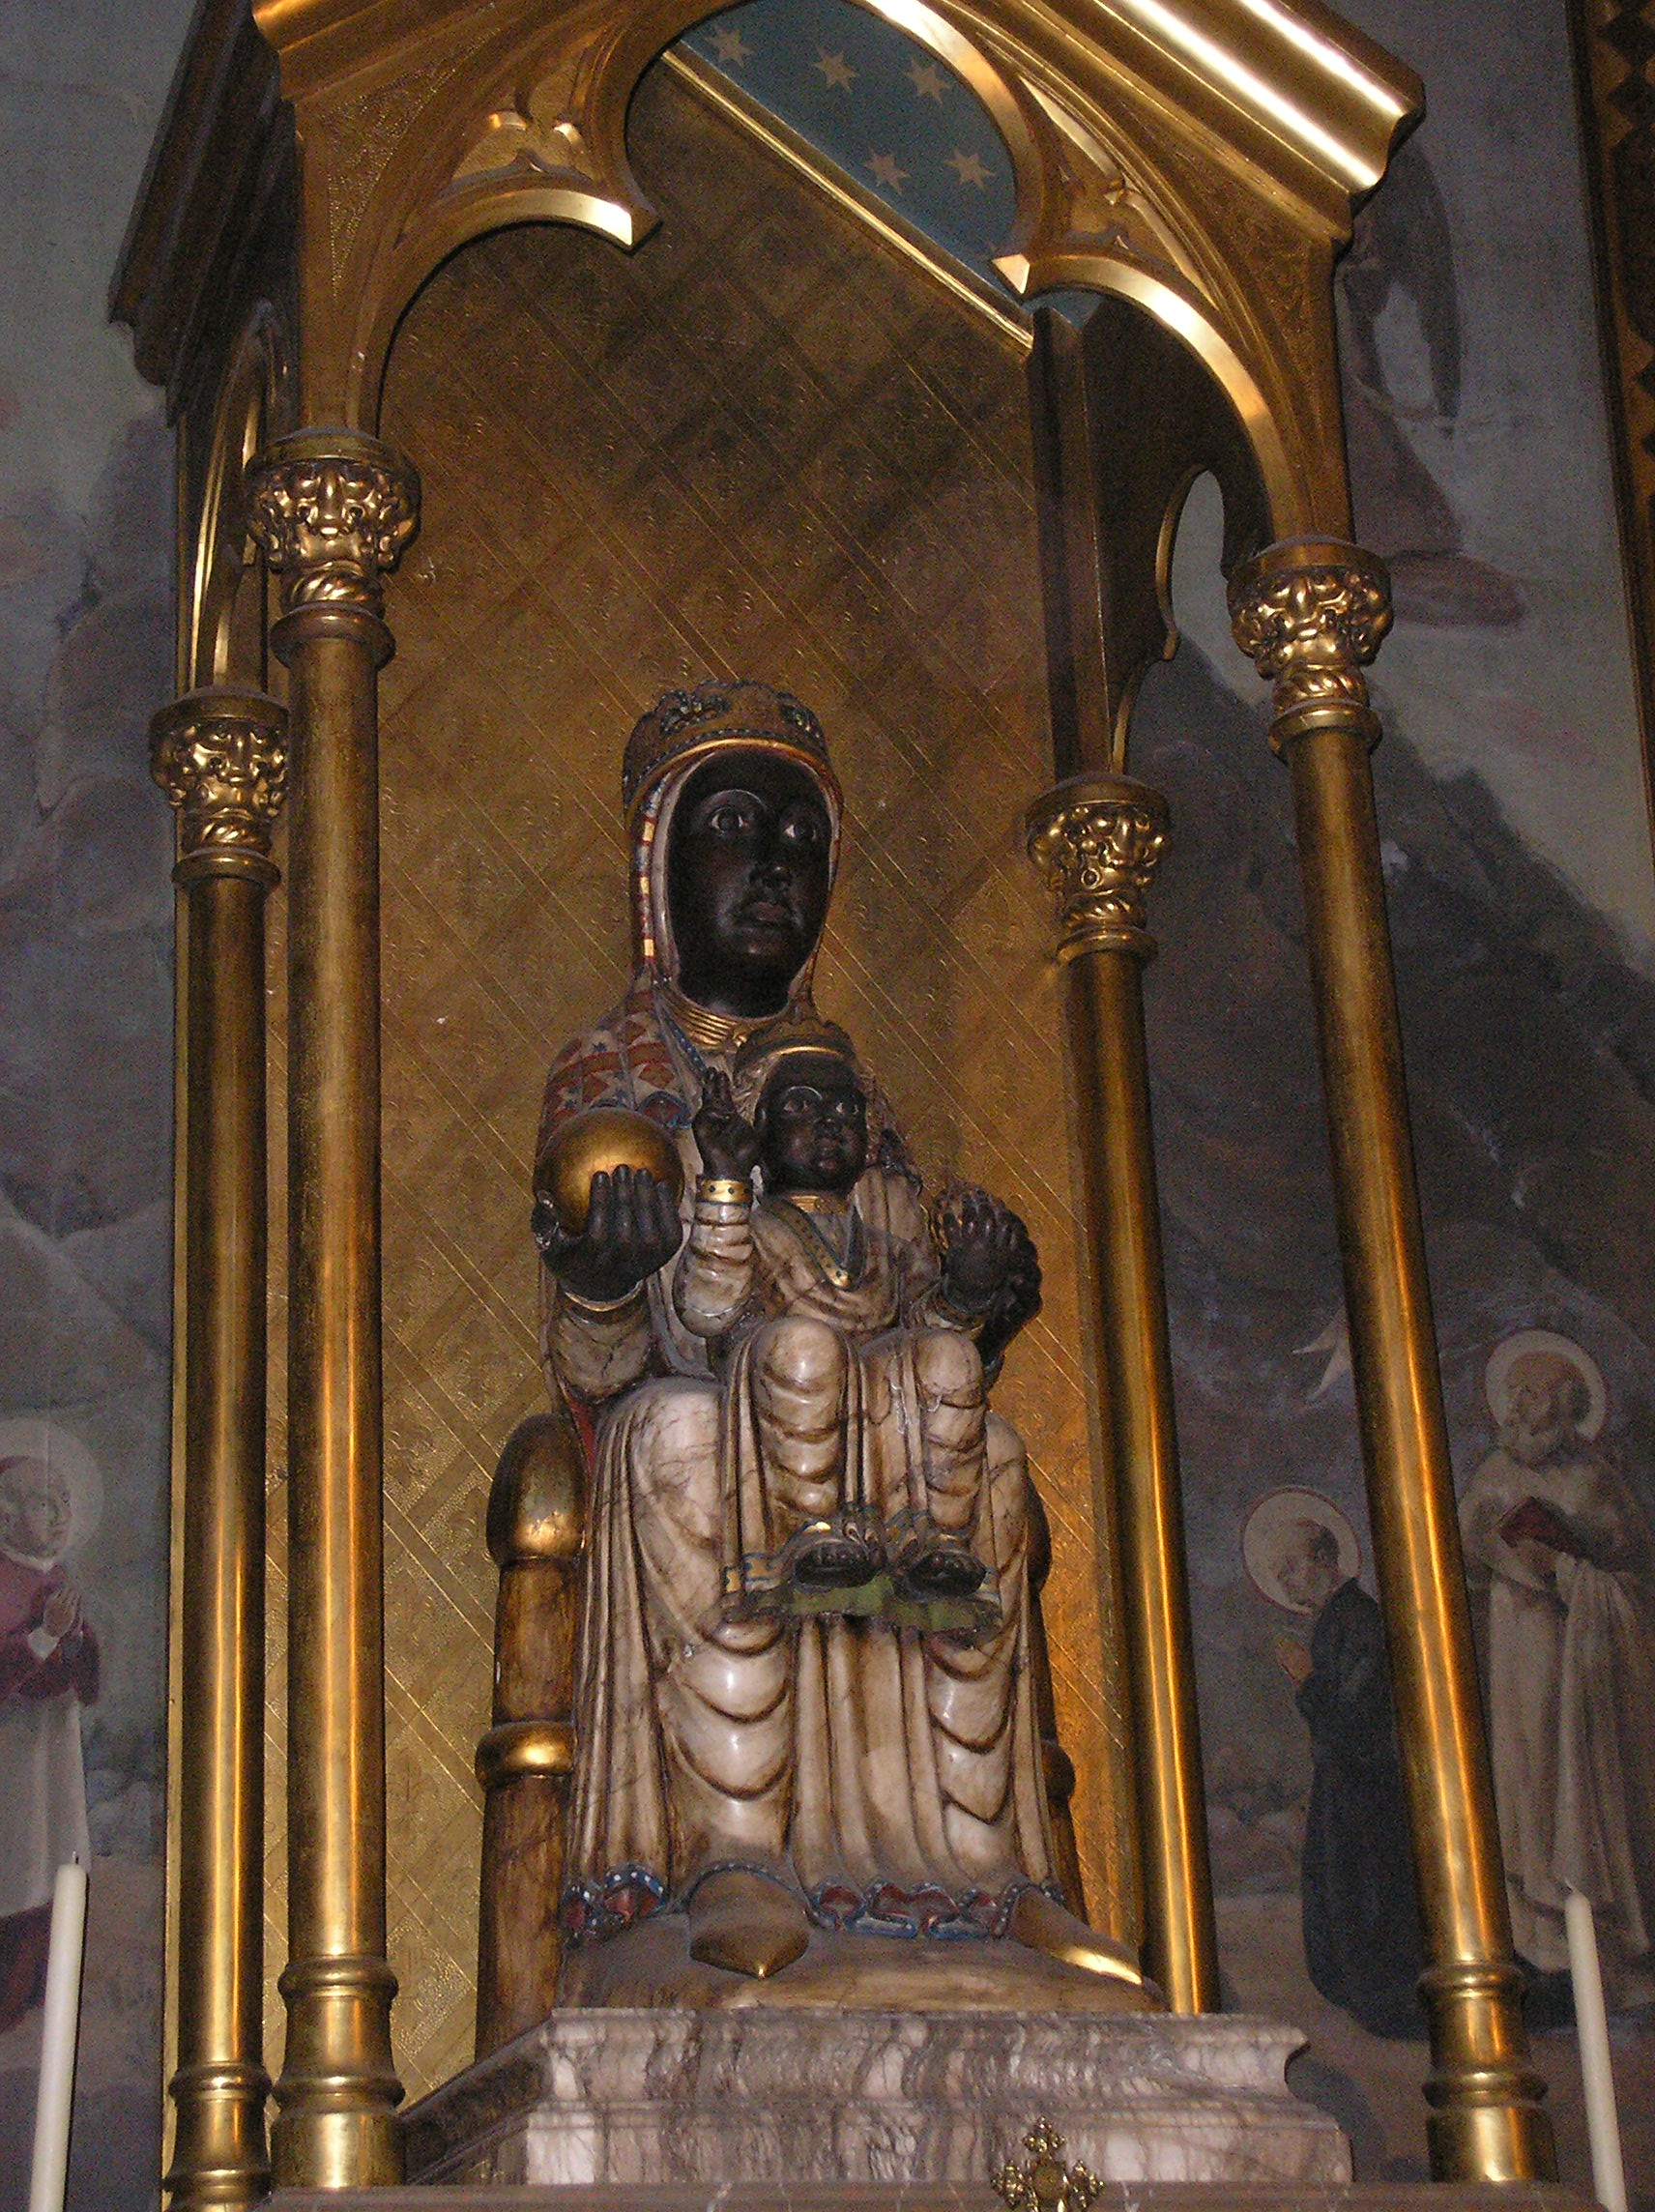 A Shrine of the Madonna and Child